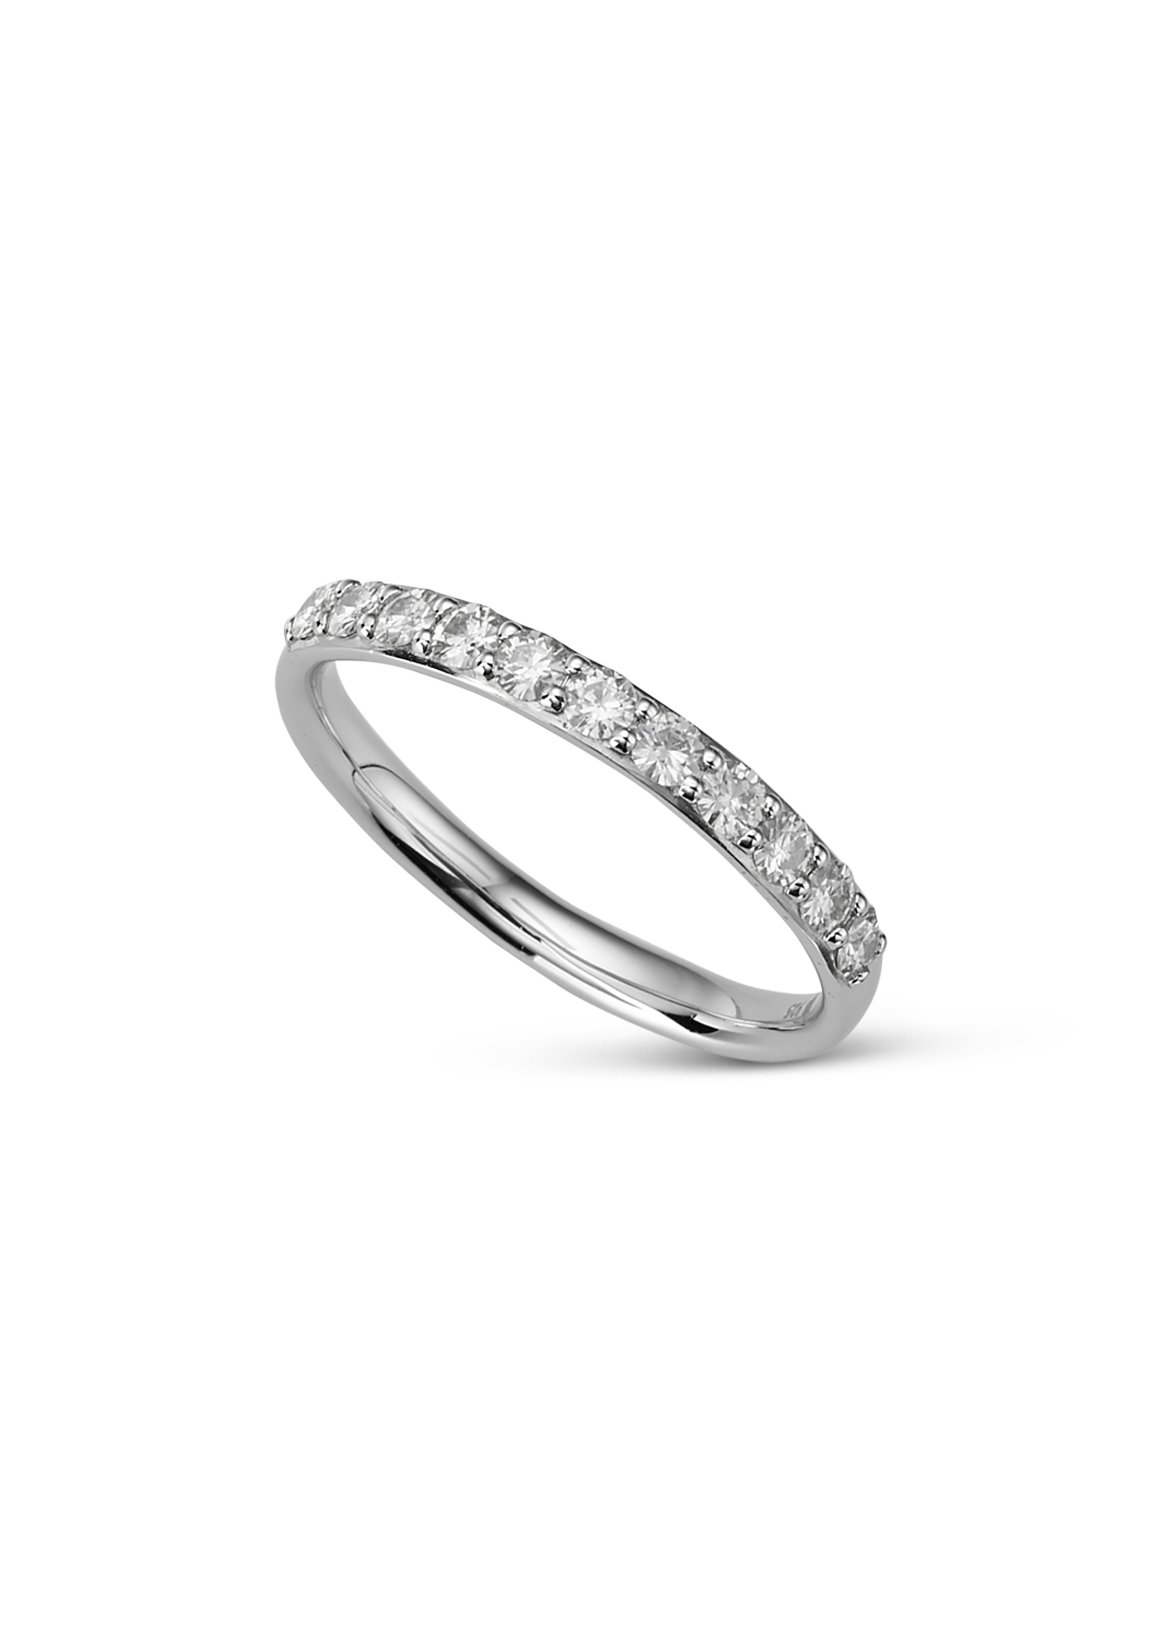 Moissanite Pave Gemstone Stacker Ring - size 8 by Charles & Colvard